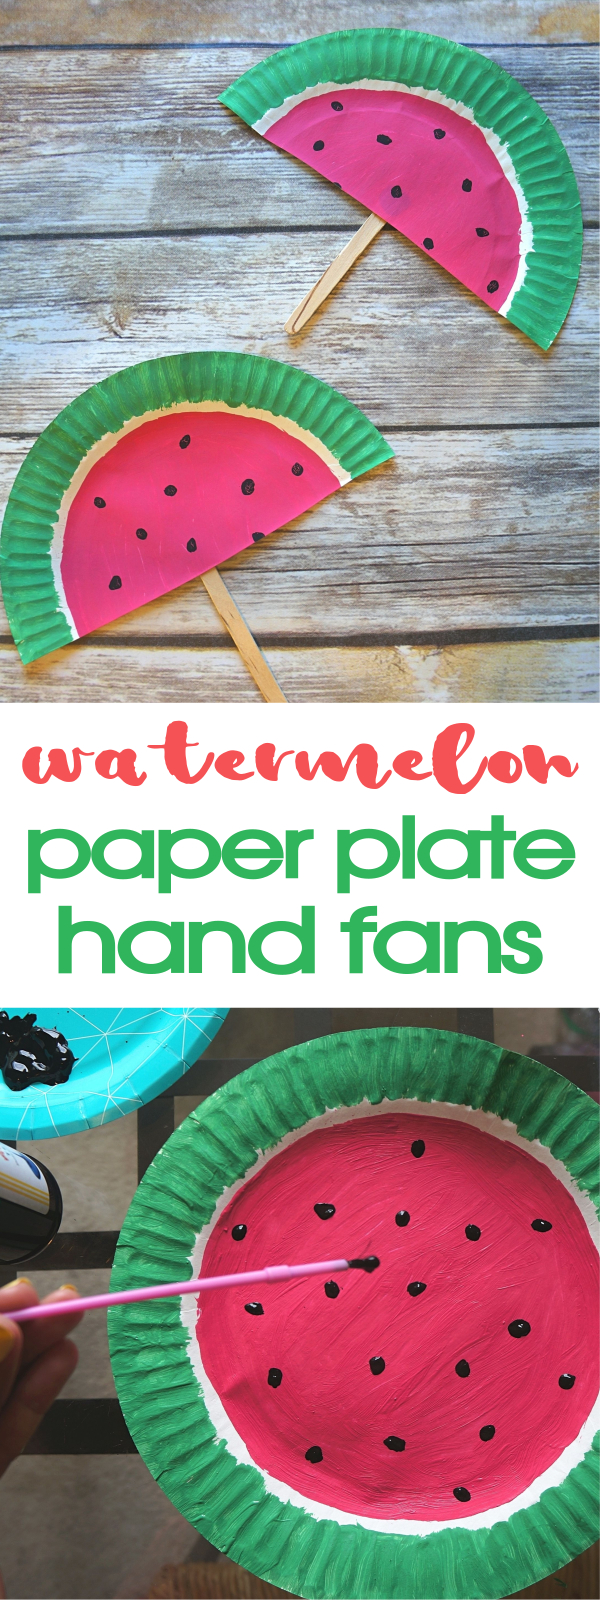 DIY Paper Plate Watermelon Fans Craft - Such A Cute Summer Activity! DIY hand fans & DIY Paper Plate Watermelon Fans Craft - Such A Cute Summer Activity!